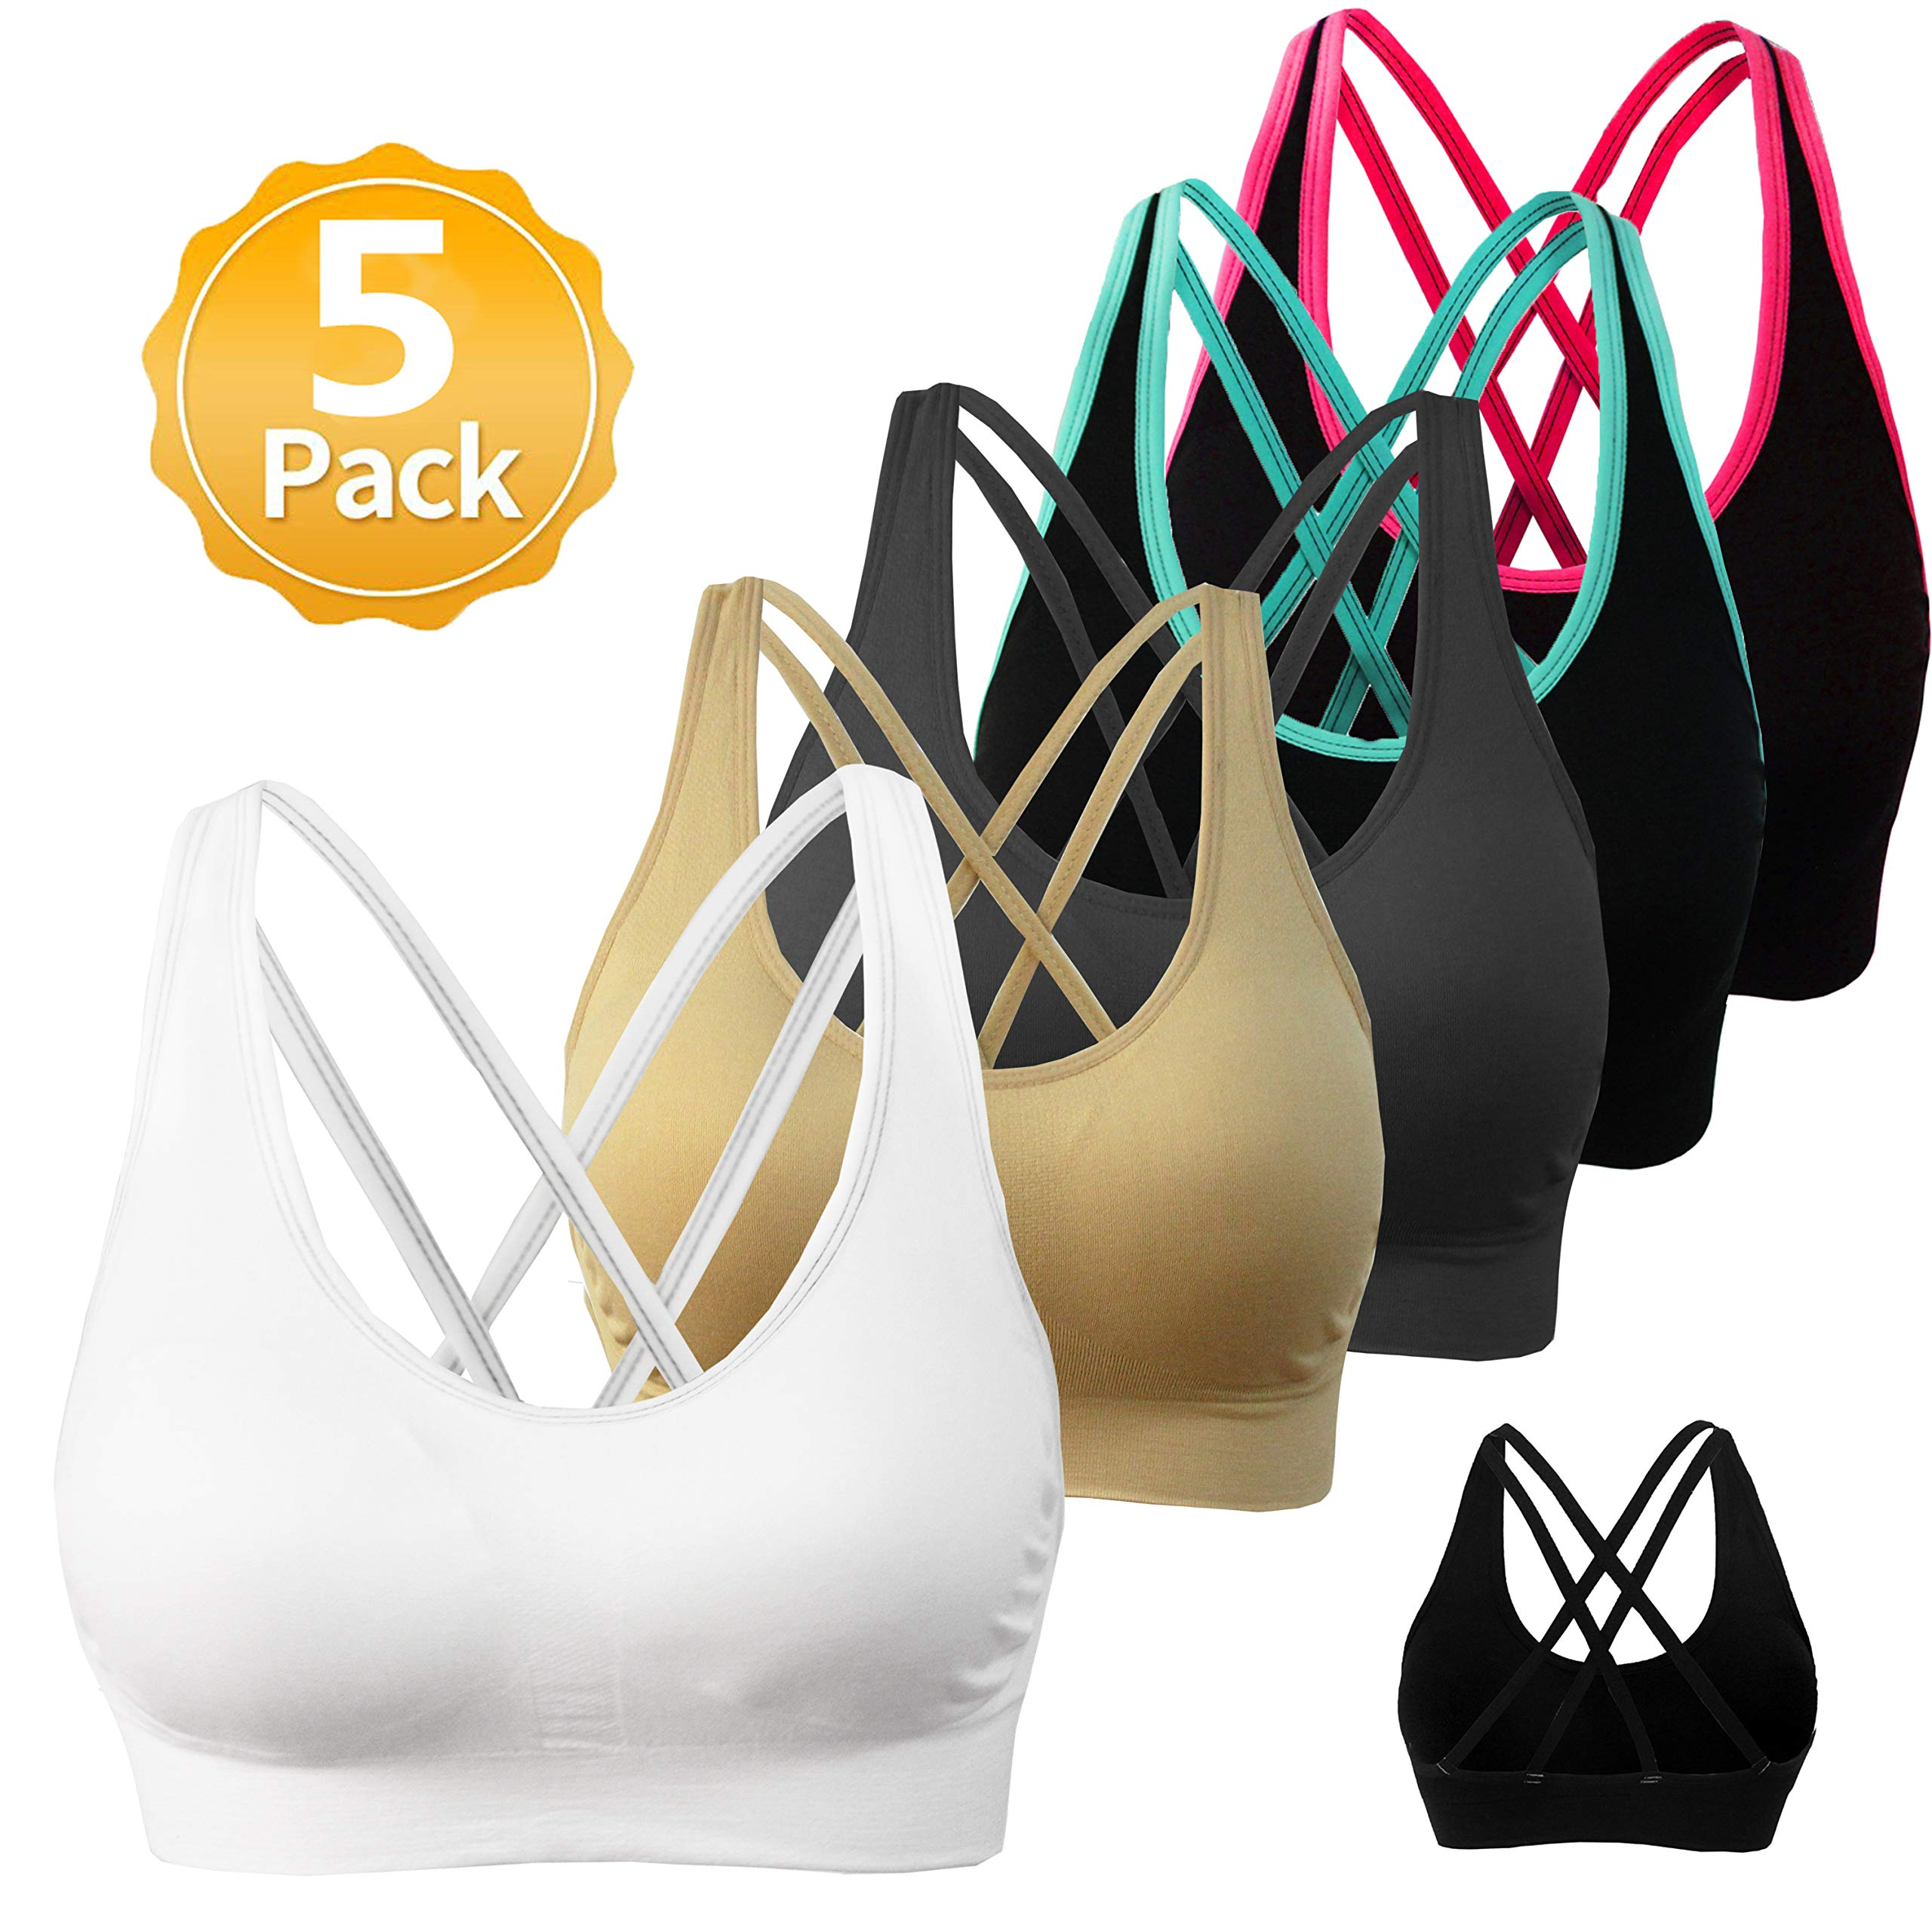 AKAMC Women's Removable Padded Sports Bras Medium Support Workout Yoga Bra 5 Pack Style-2D,2,Small